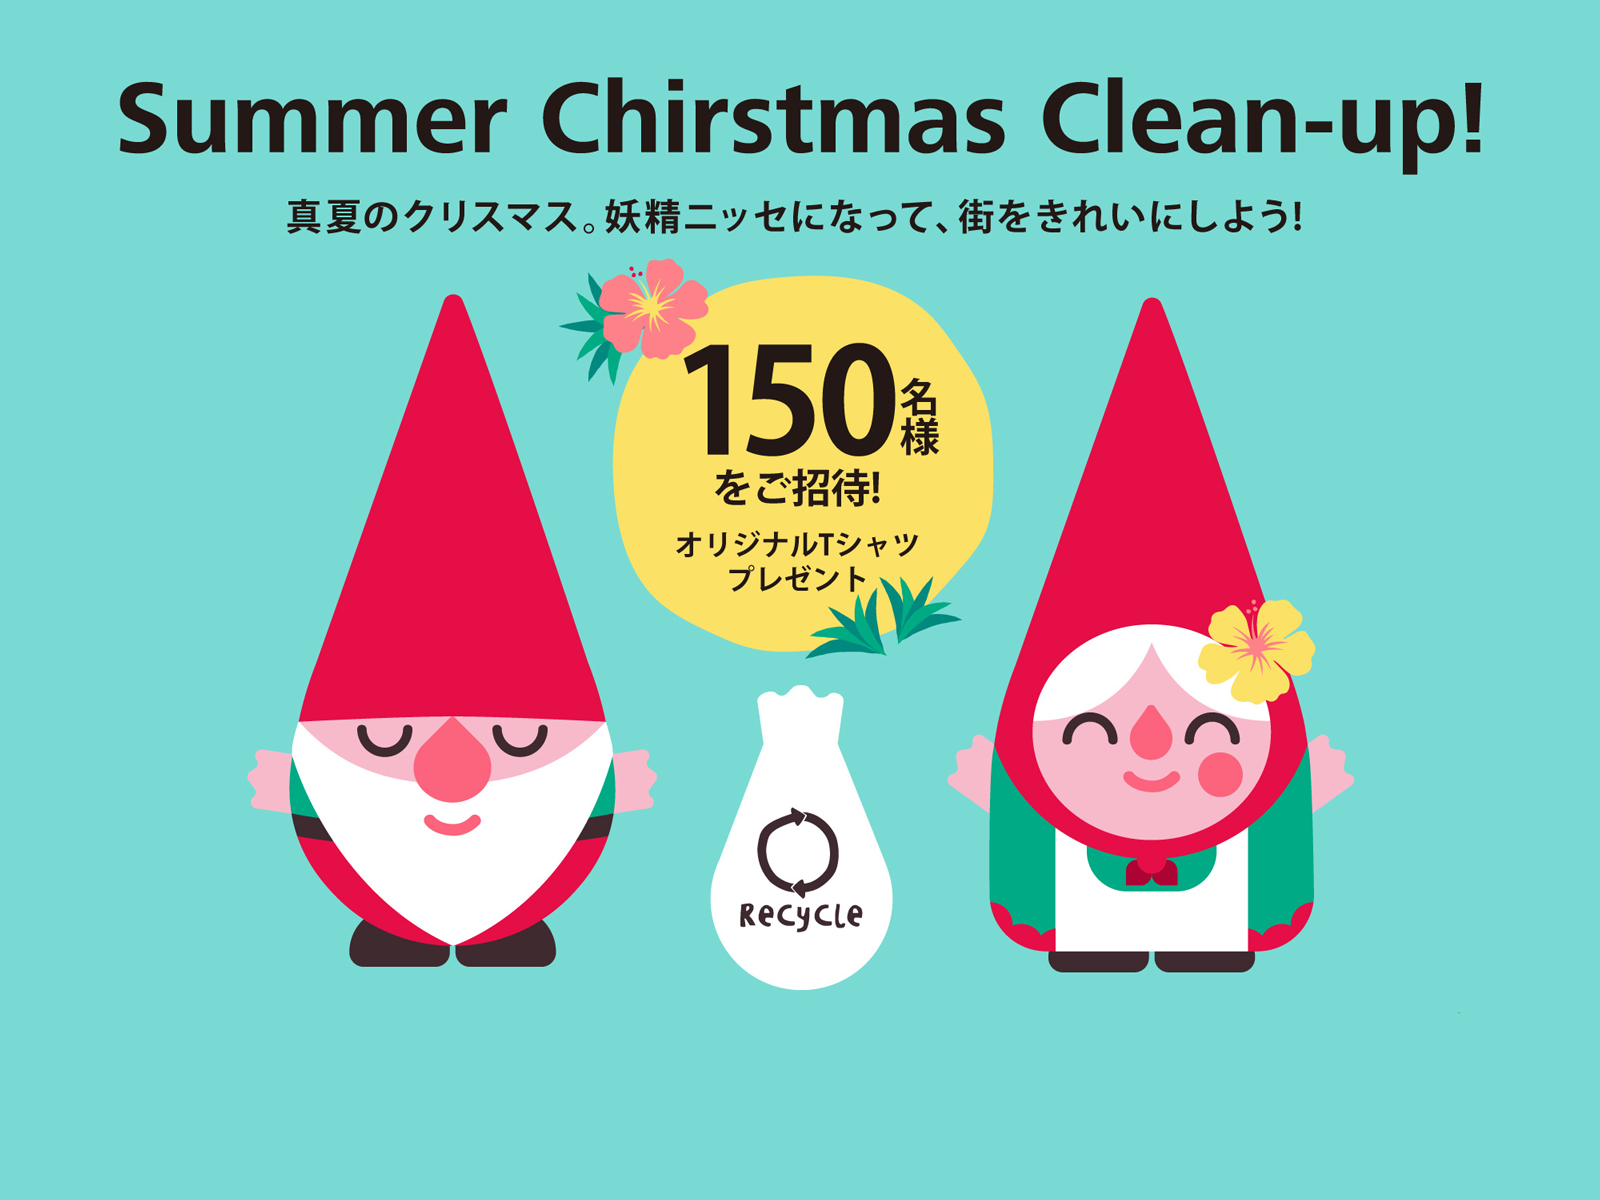 Summer Christmas Clean-up!